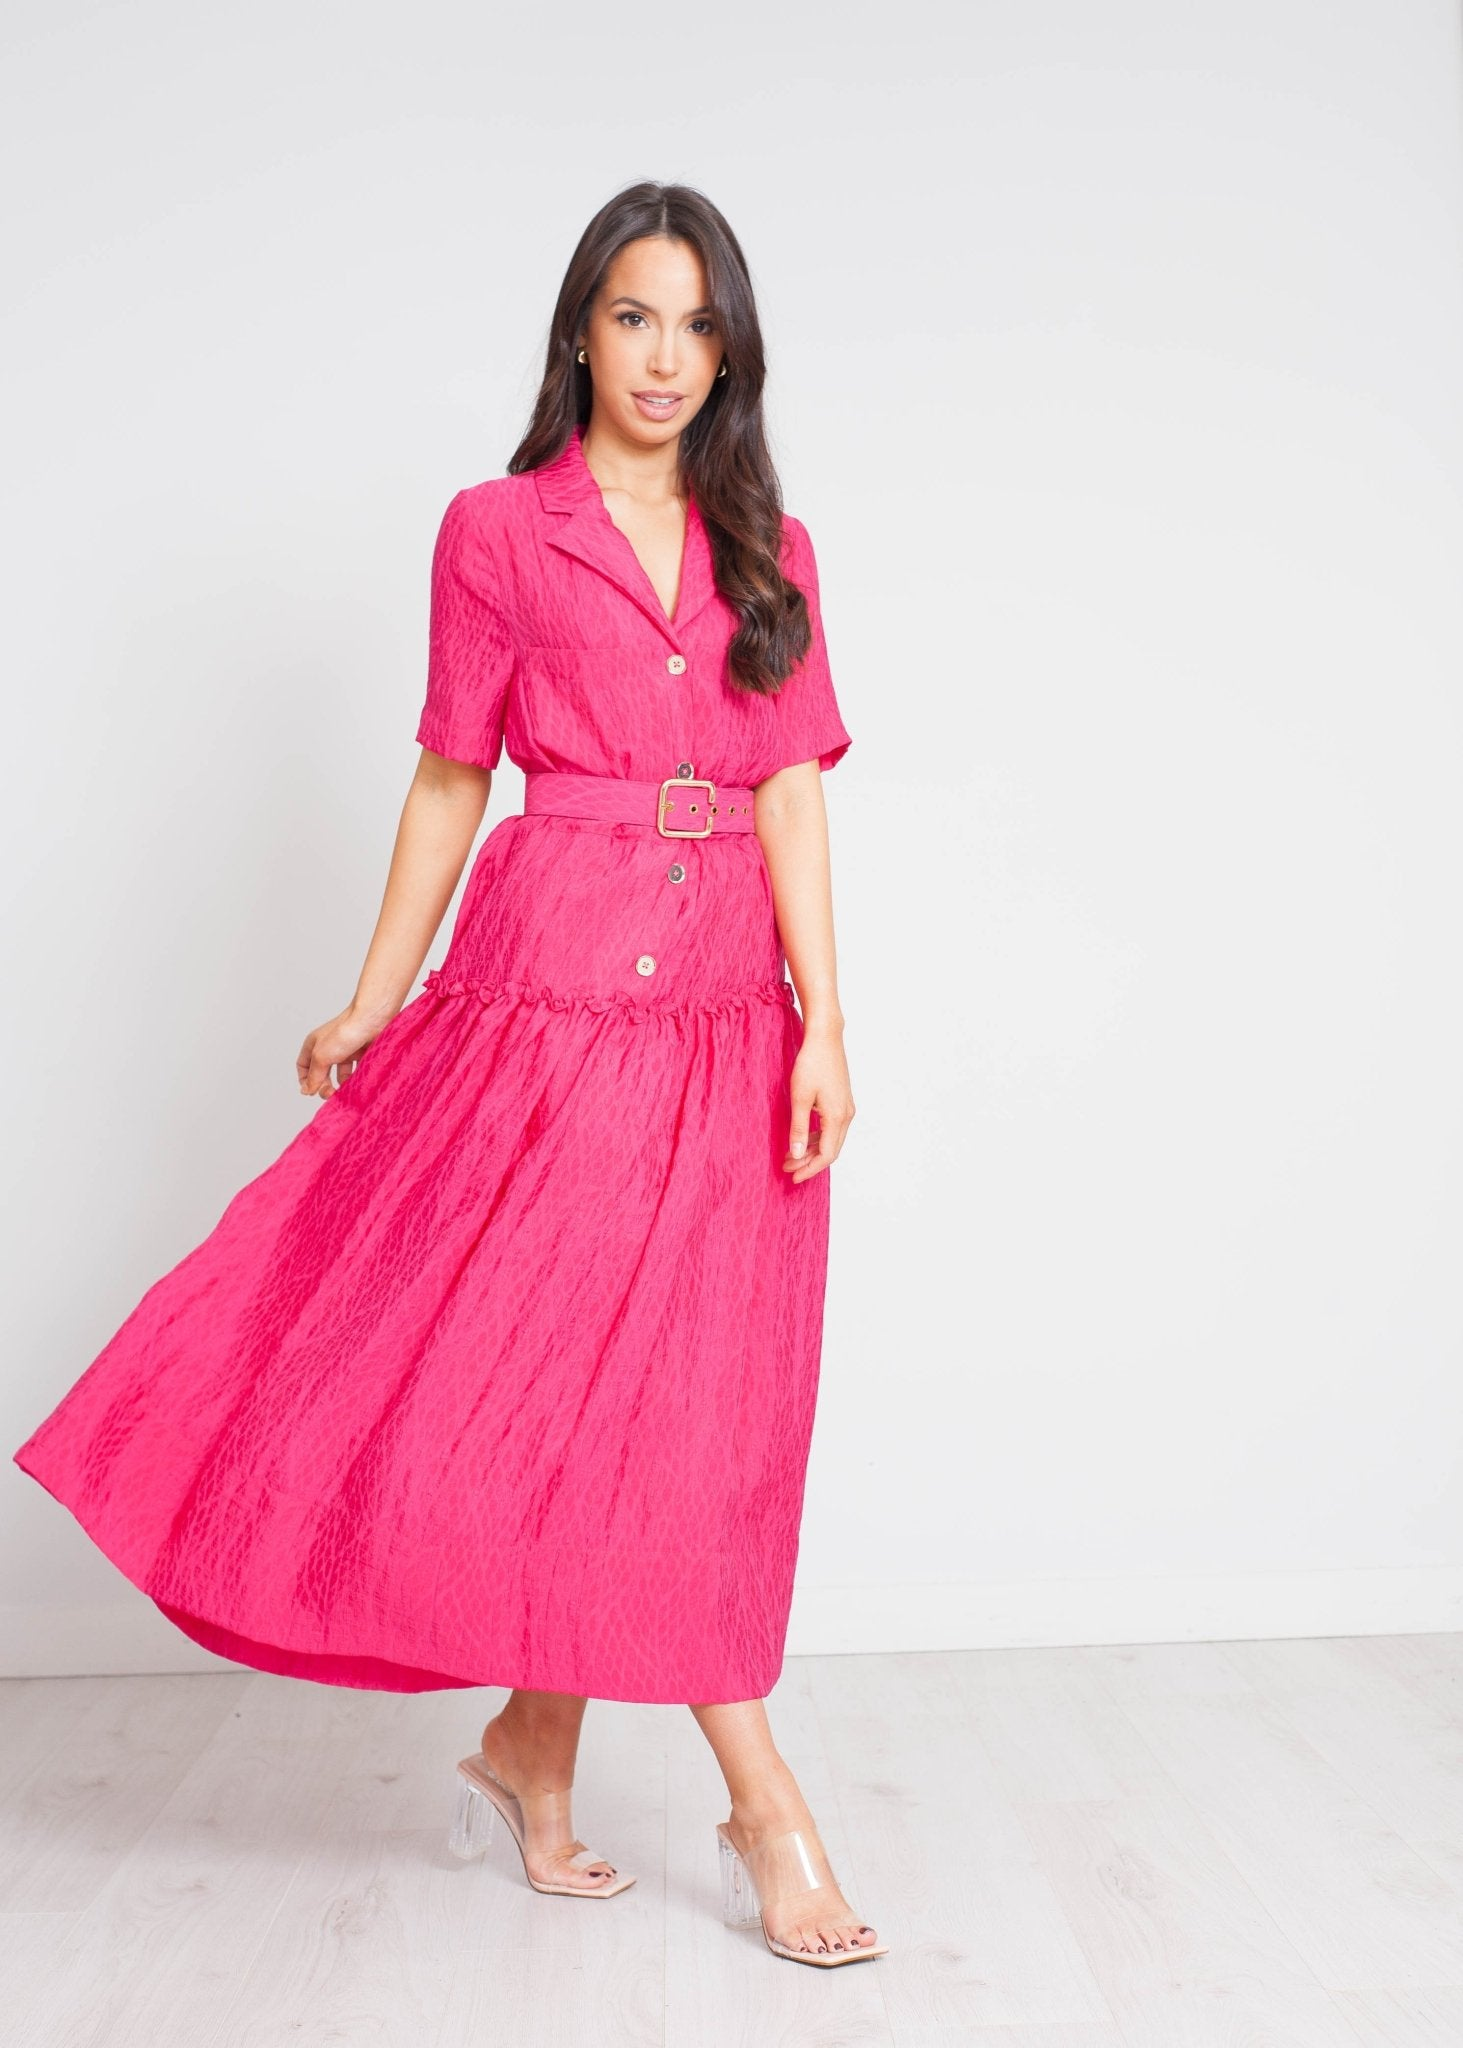 Eva Button Front Dress In Pink - The Walk in Wardrobe